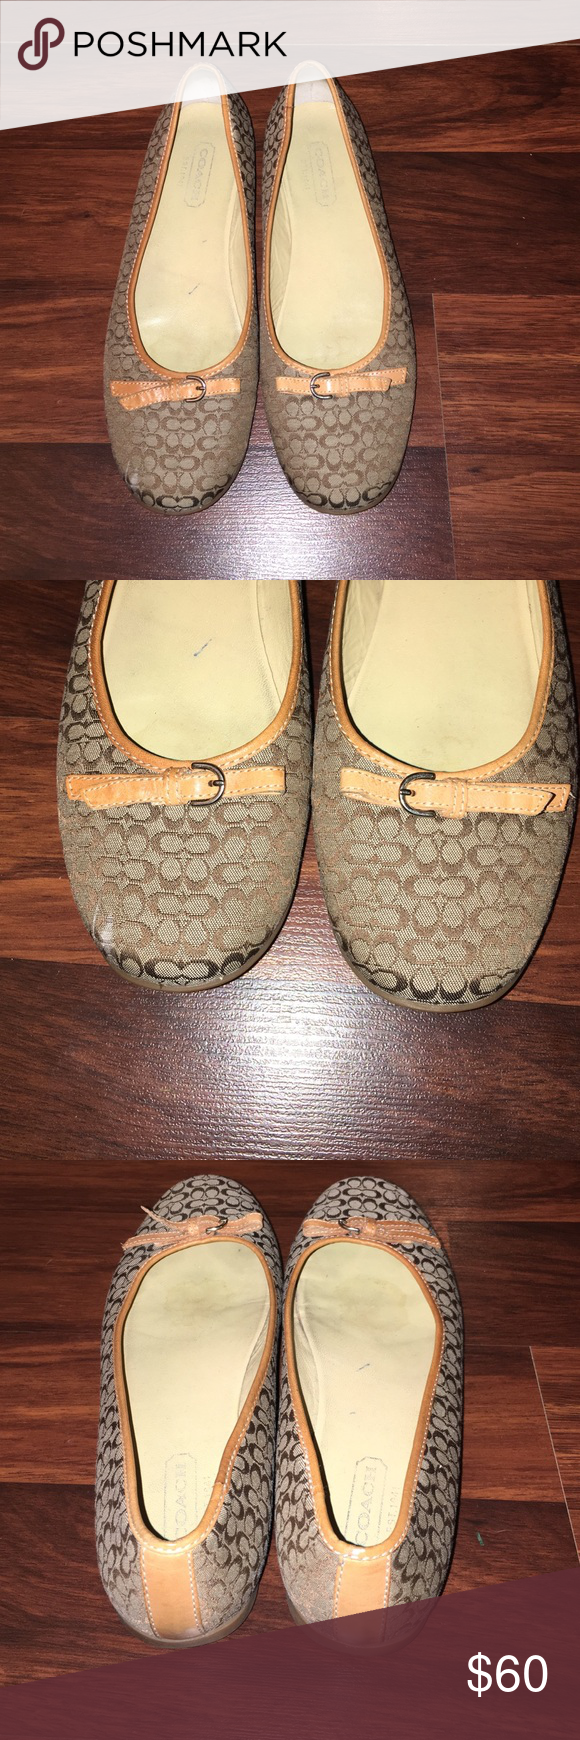 Coach Crystal Flats Coach Crystal Flats with mini signature c. Flaws: leather discoloration on the back heel outside(seen in 4th photo) Coach Shoes Flats & Loafers